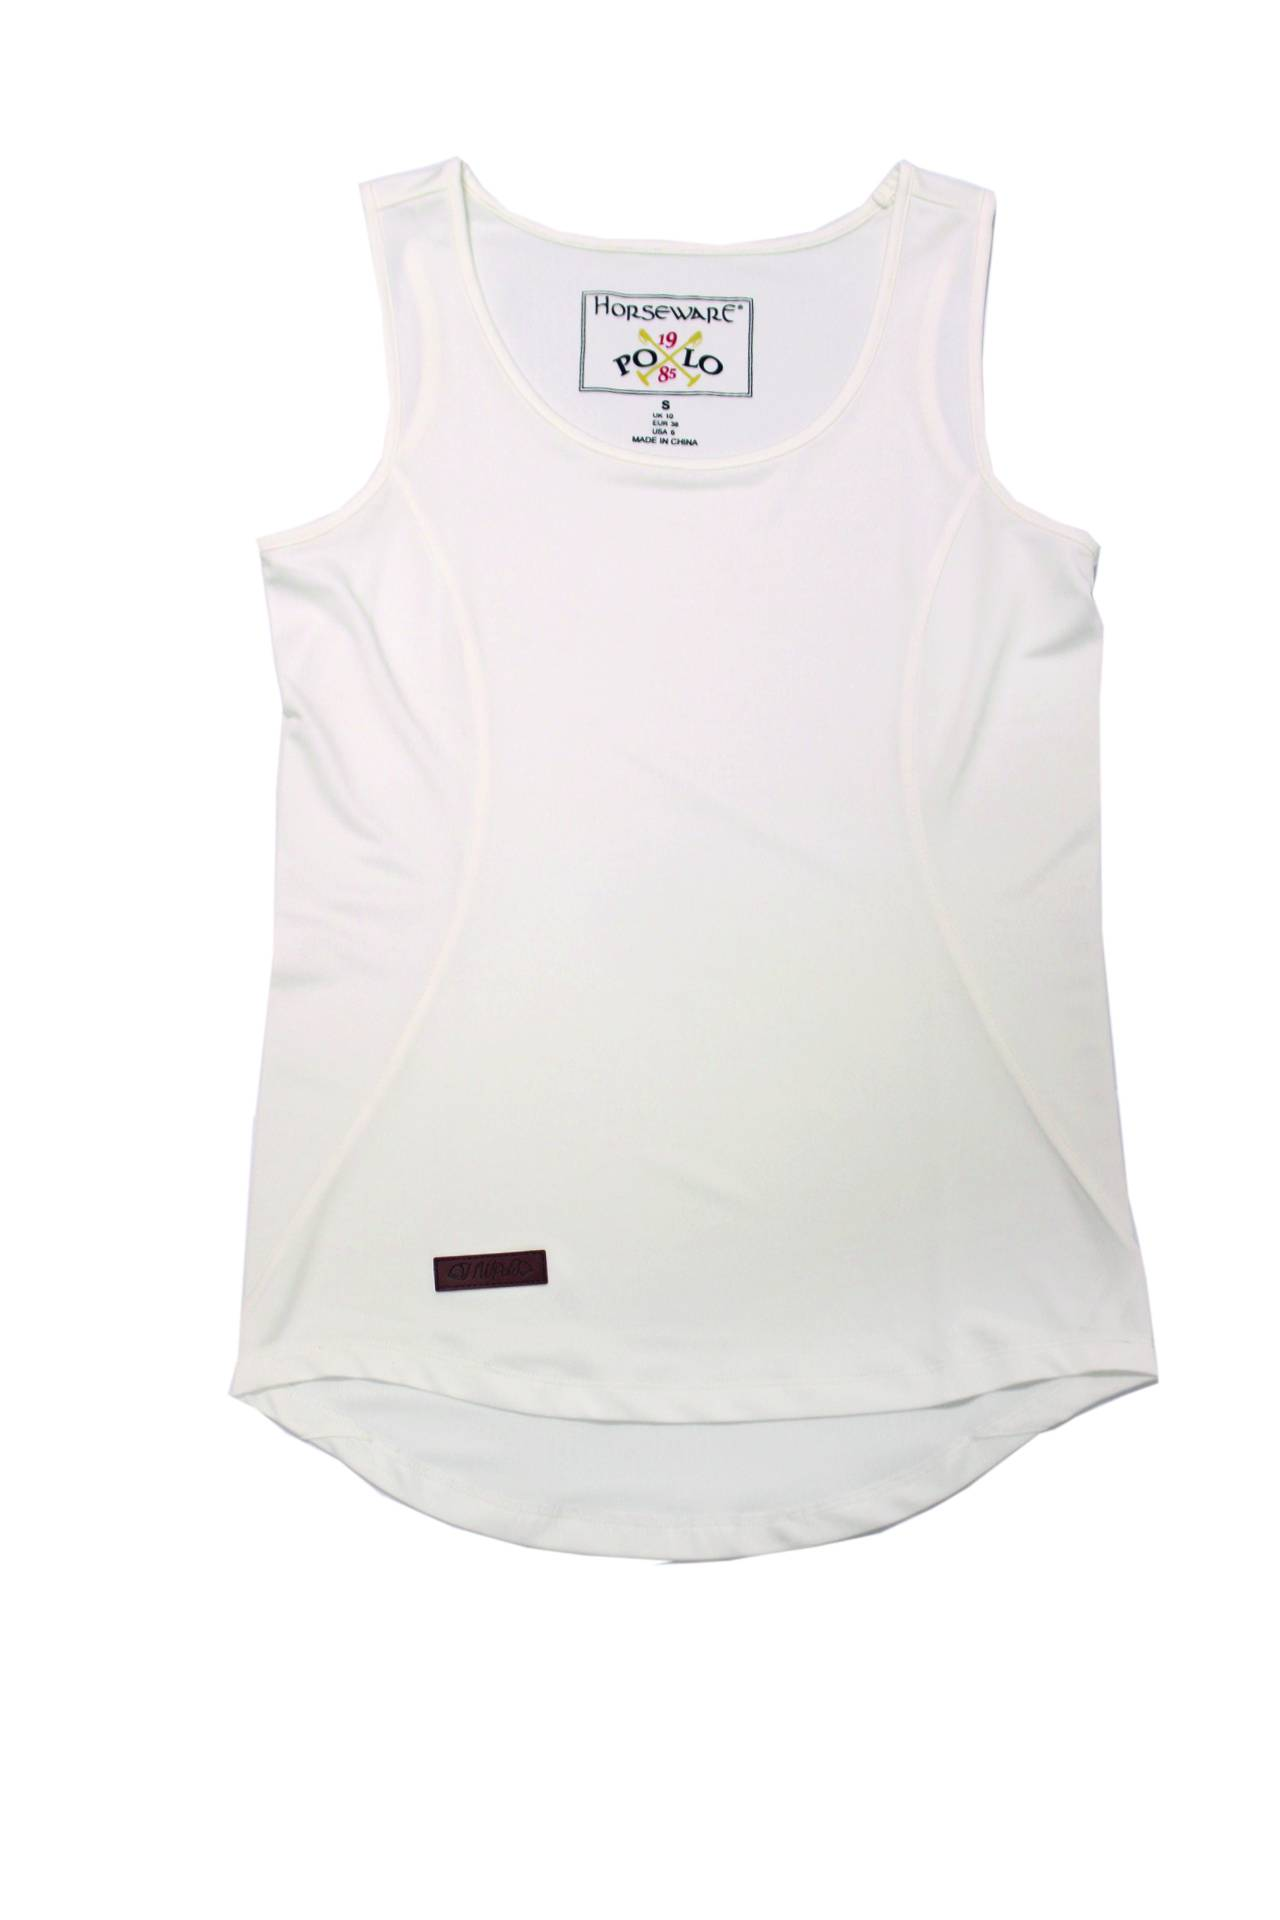 Horseware Lottie Tank Top - Ladies